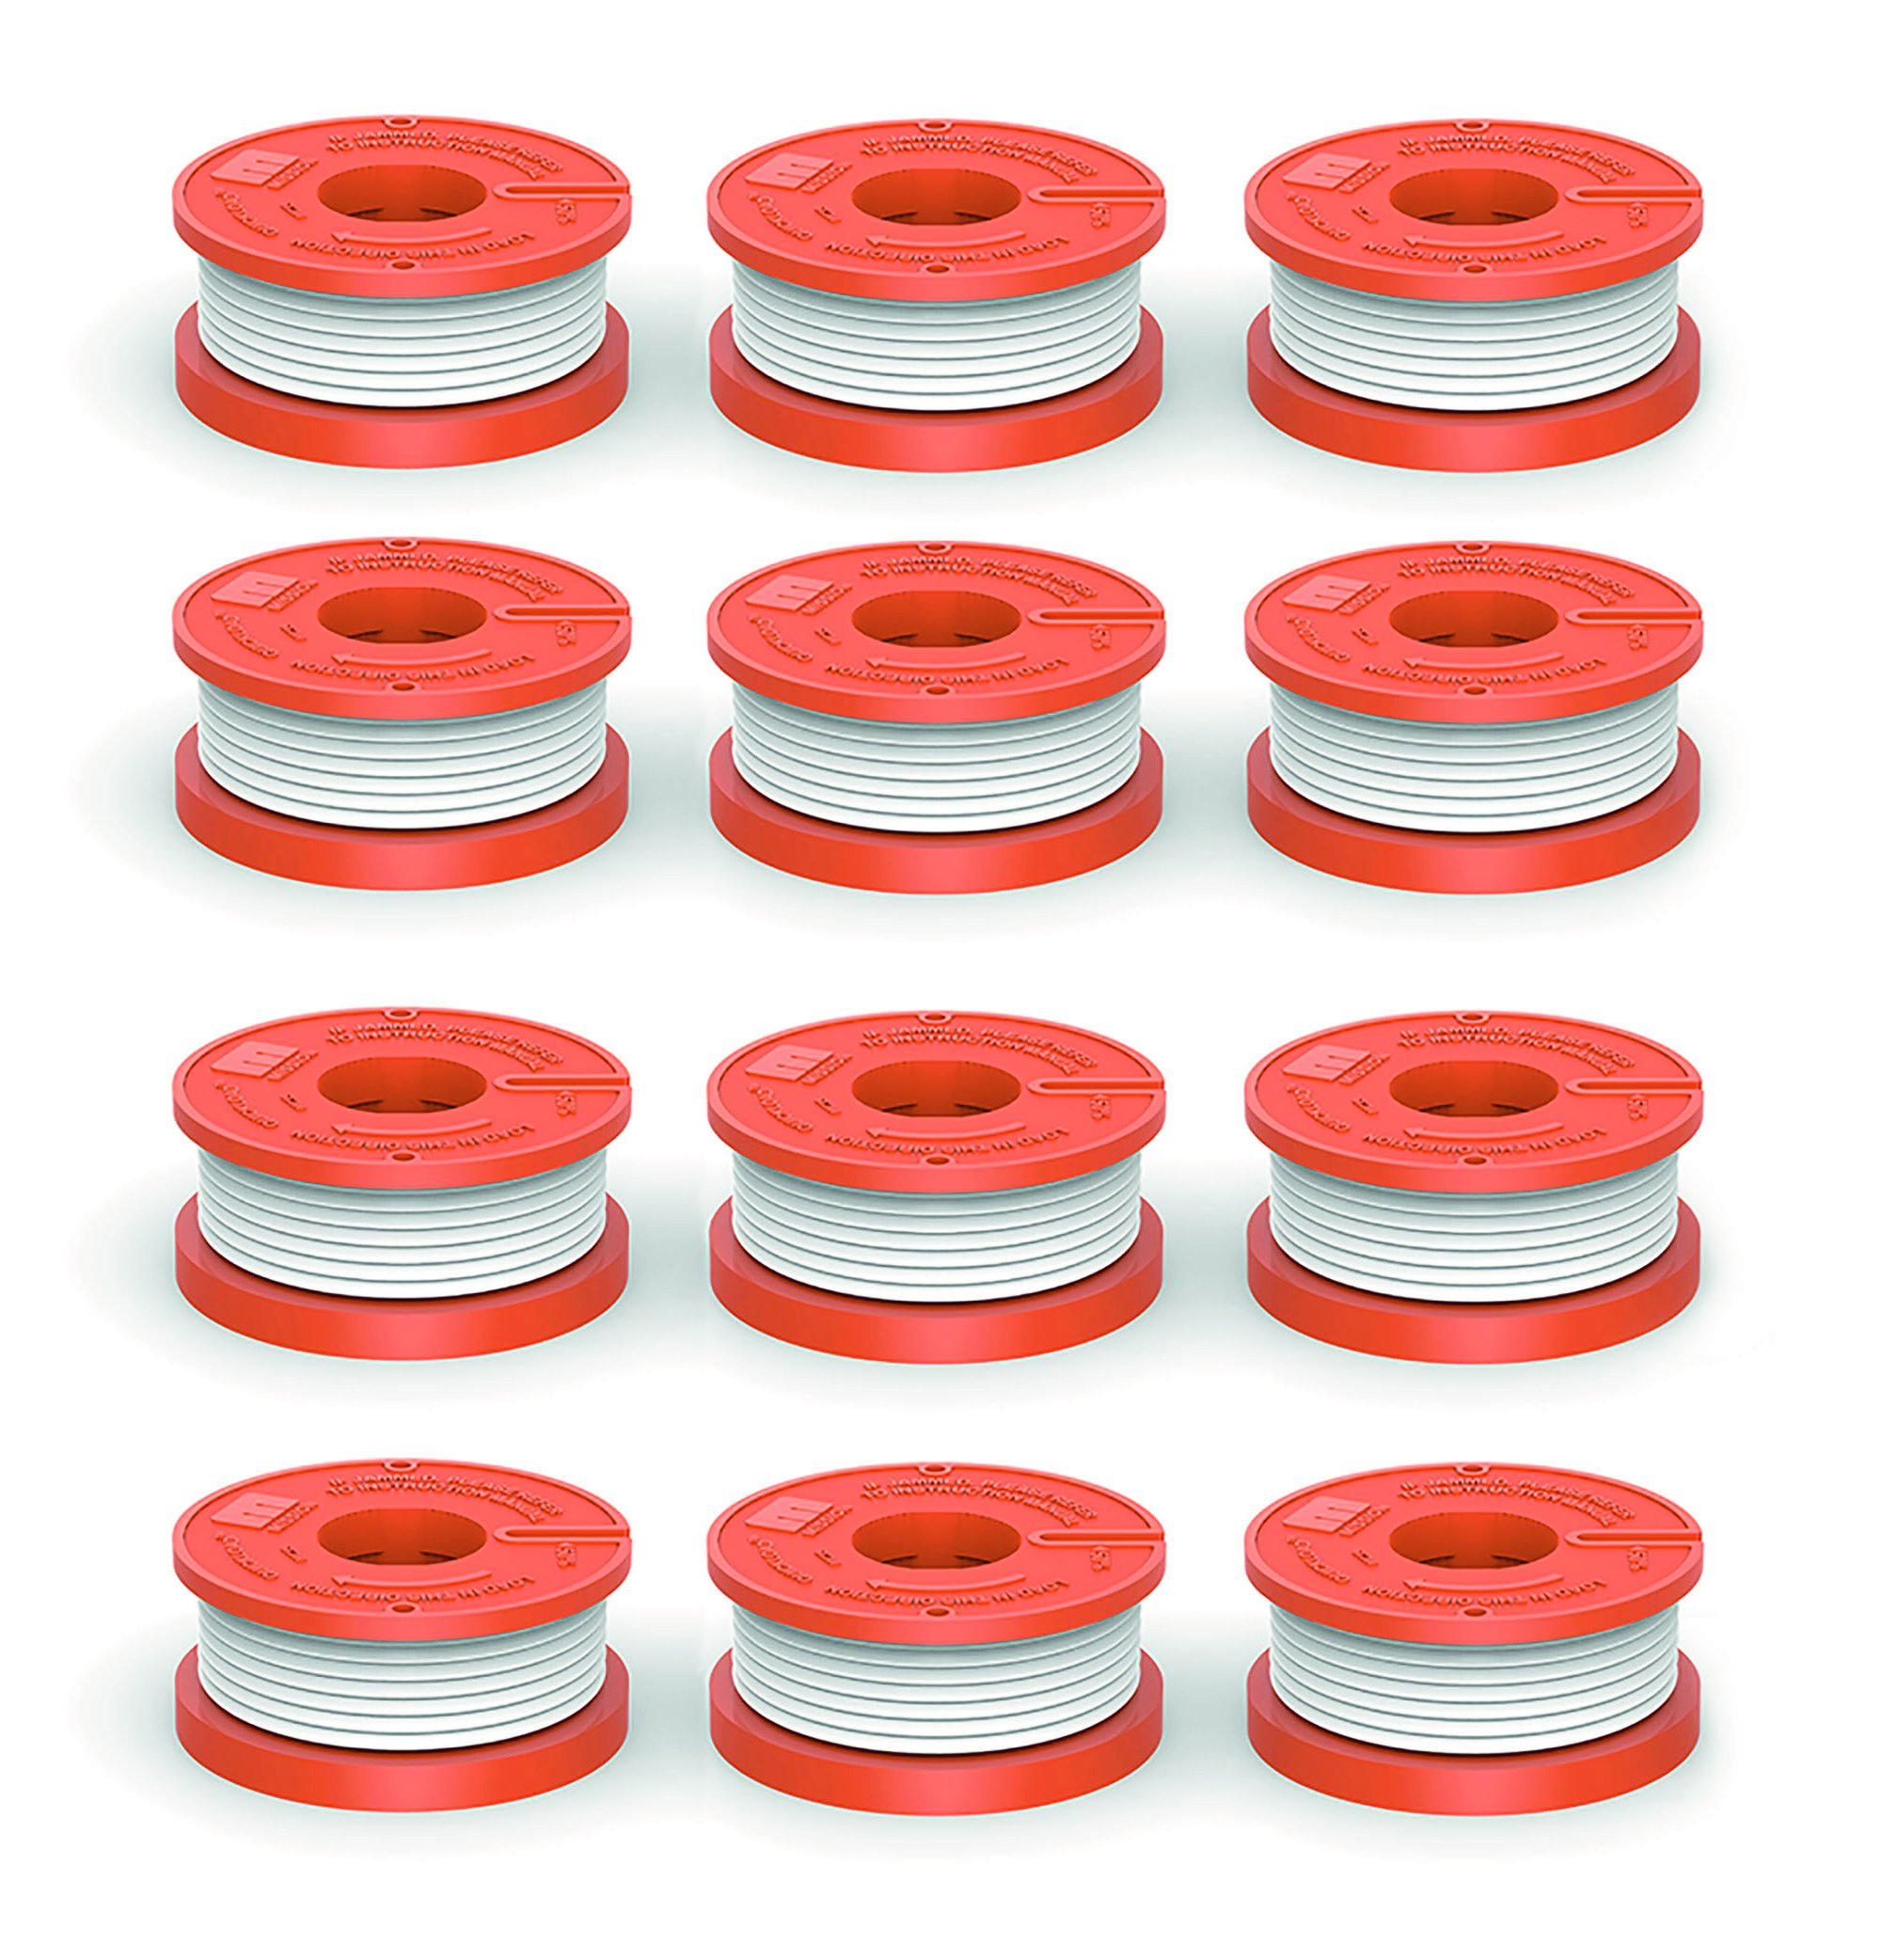 Quickload 0.065'' Replacement Autofeed Spool for WORX String Trimmers (Compatible with WA0010), 12-Pack by Quickload